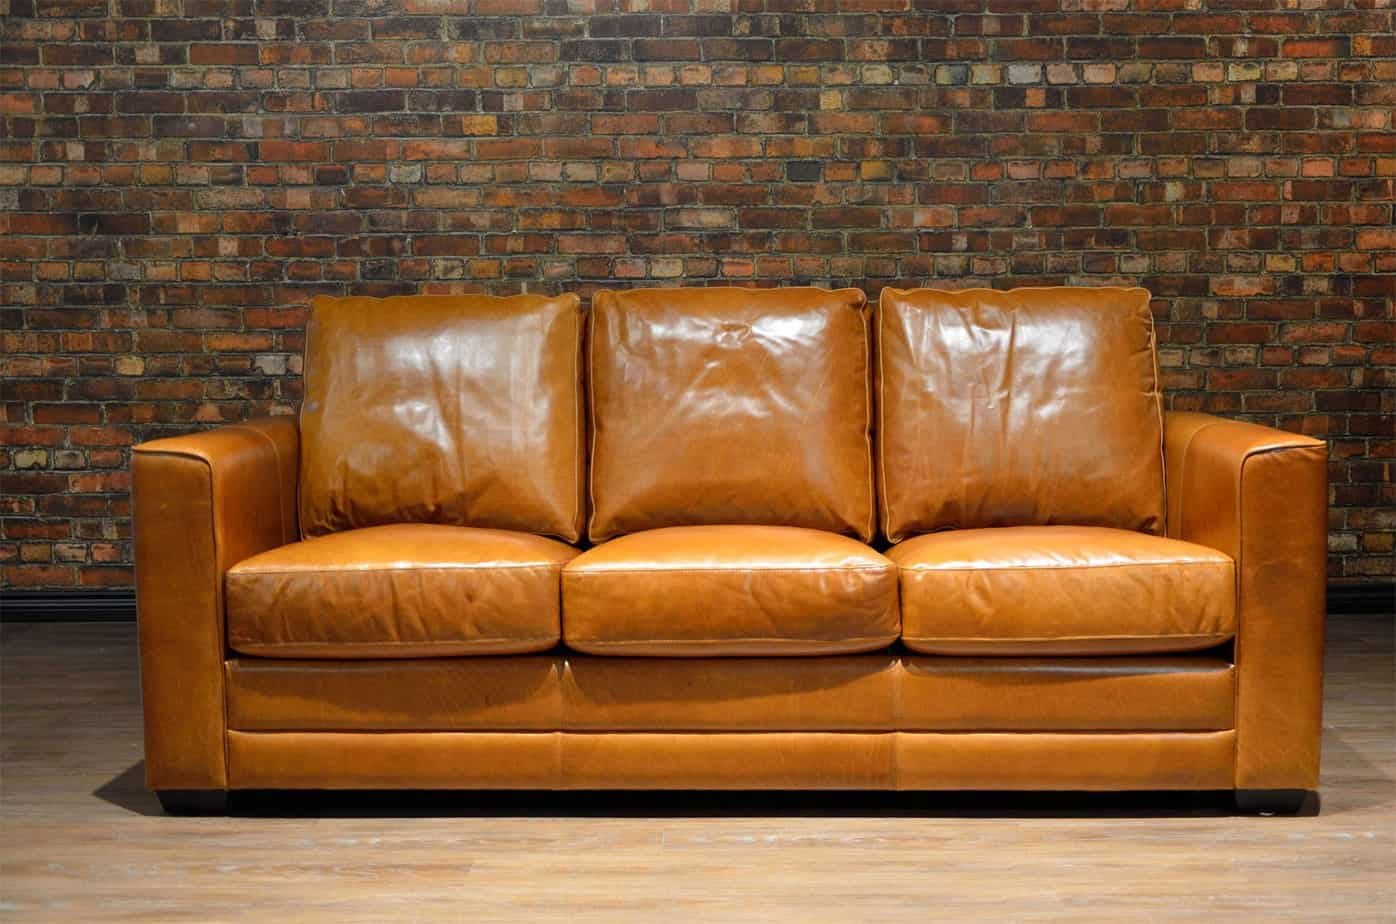 Leather sofa sectional choose color leather size for Sectional leather couch edmonton